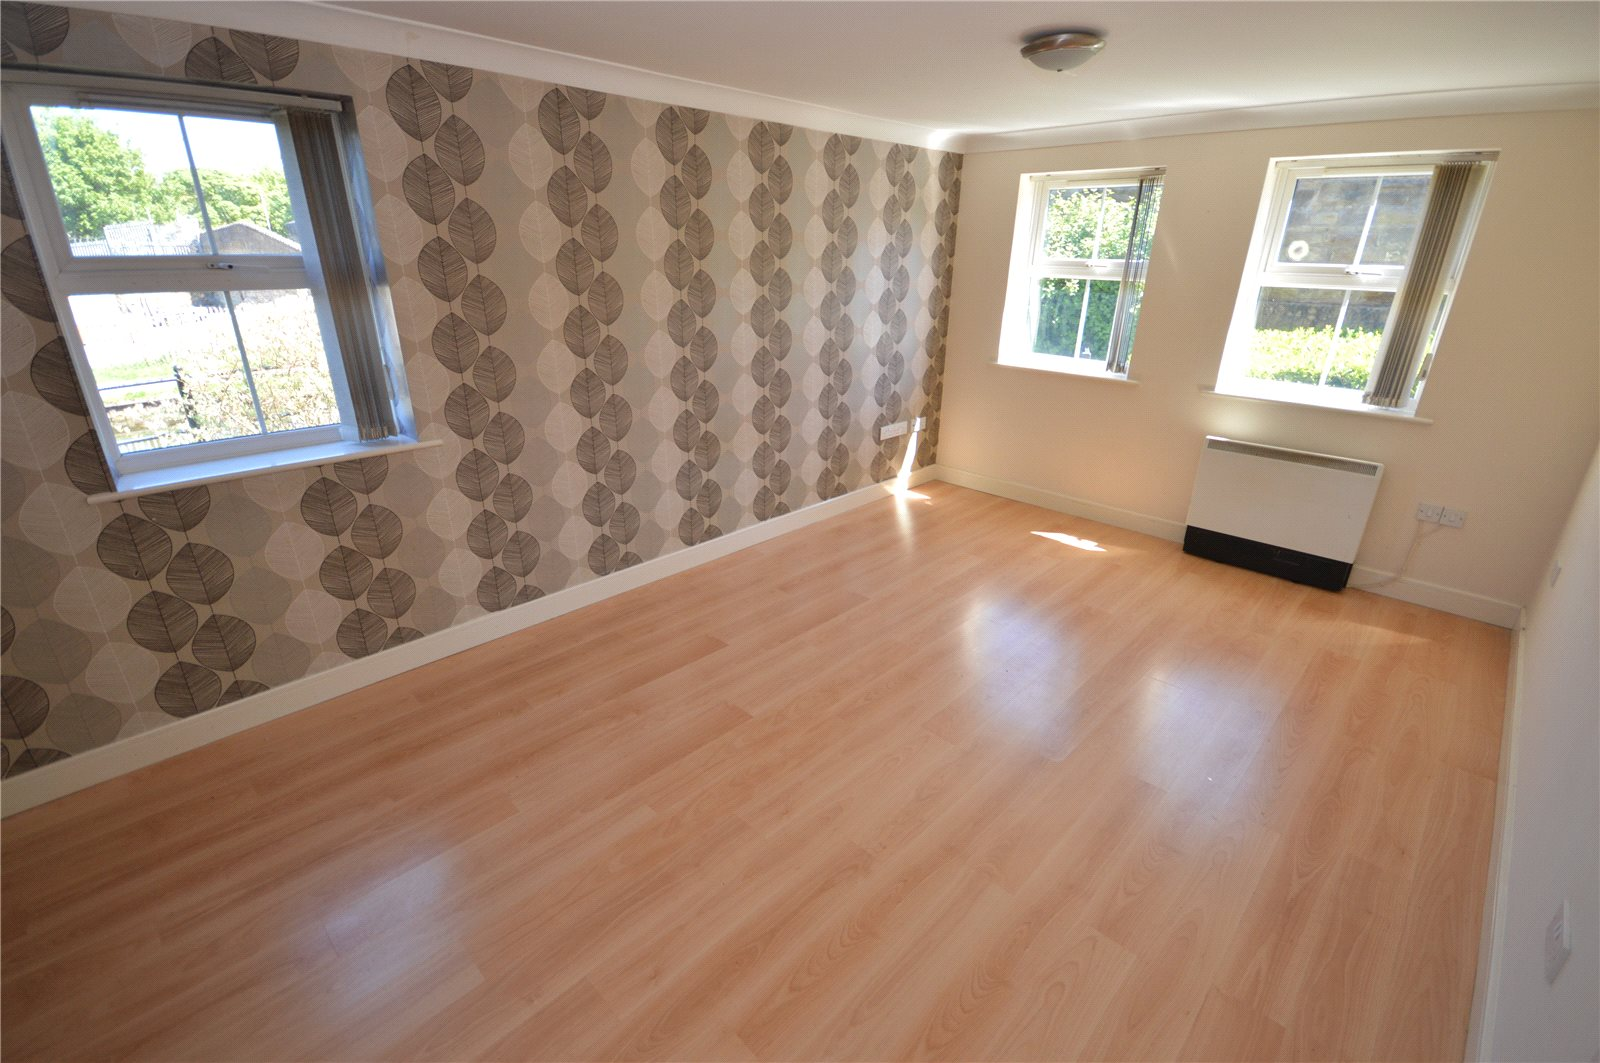 Property for sale in Guiseley, interior dining reception room